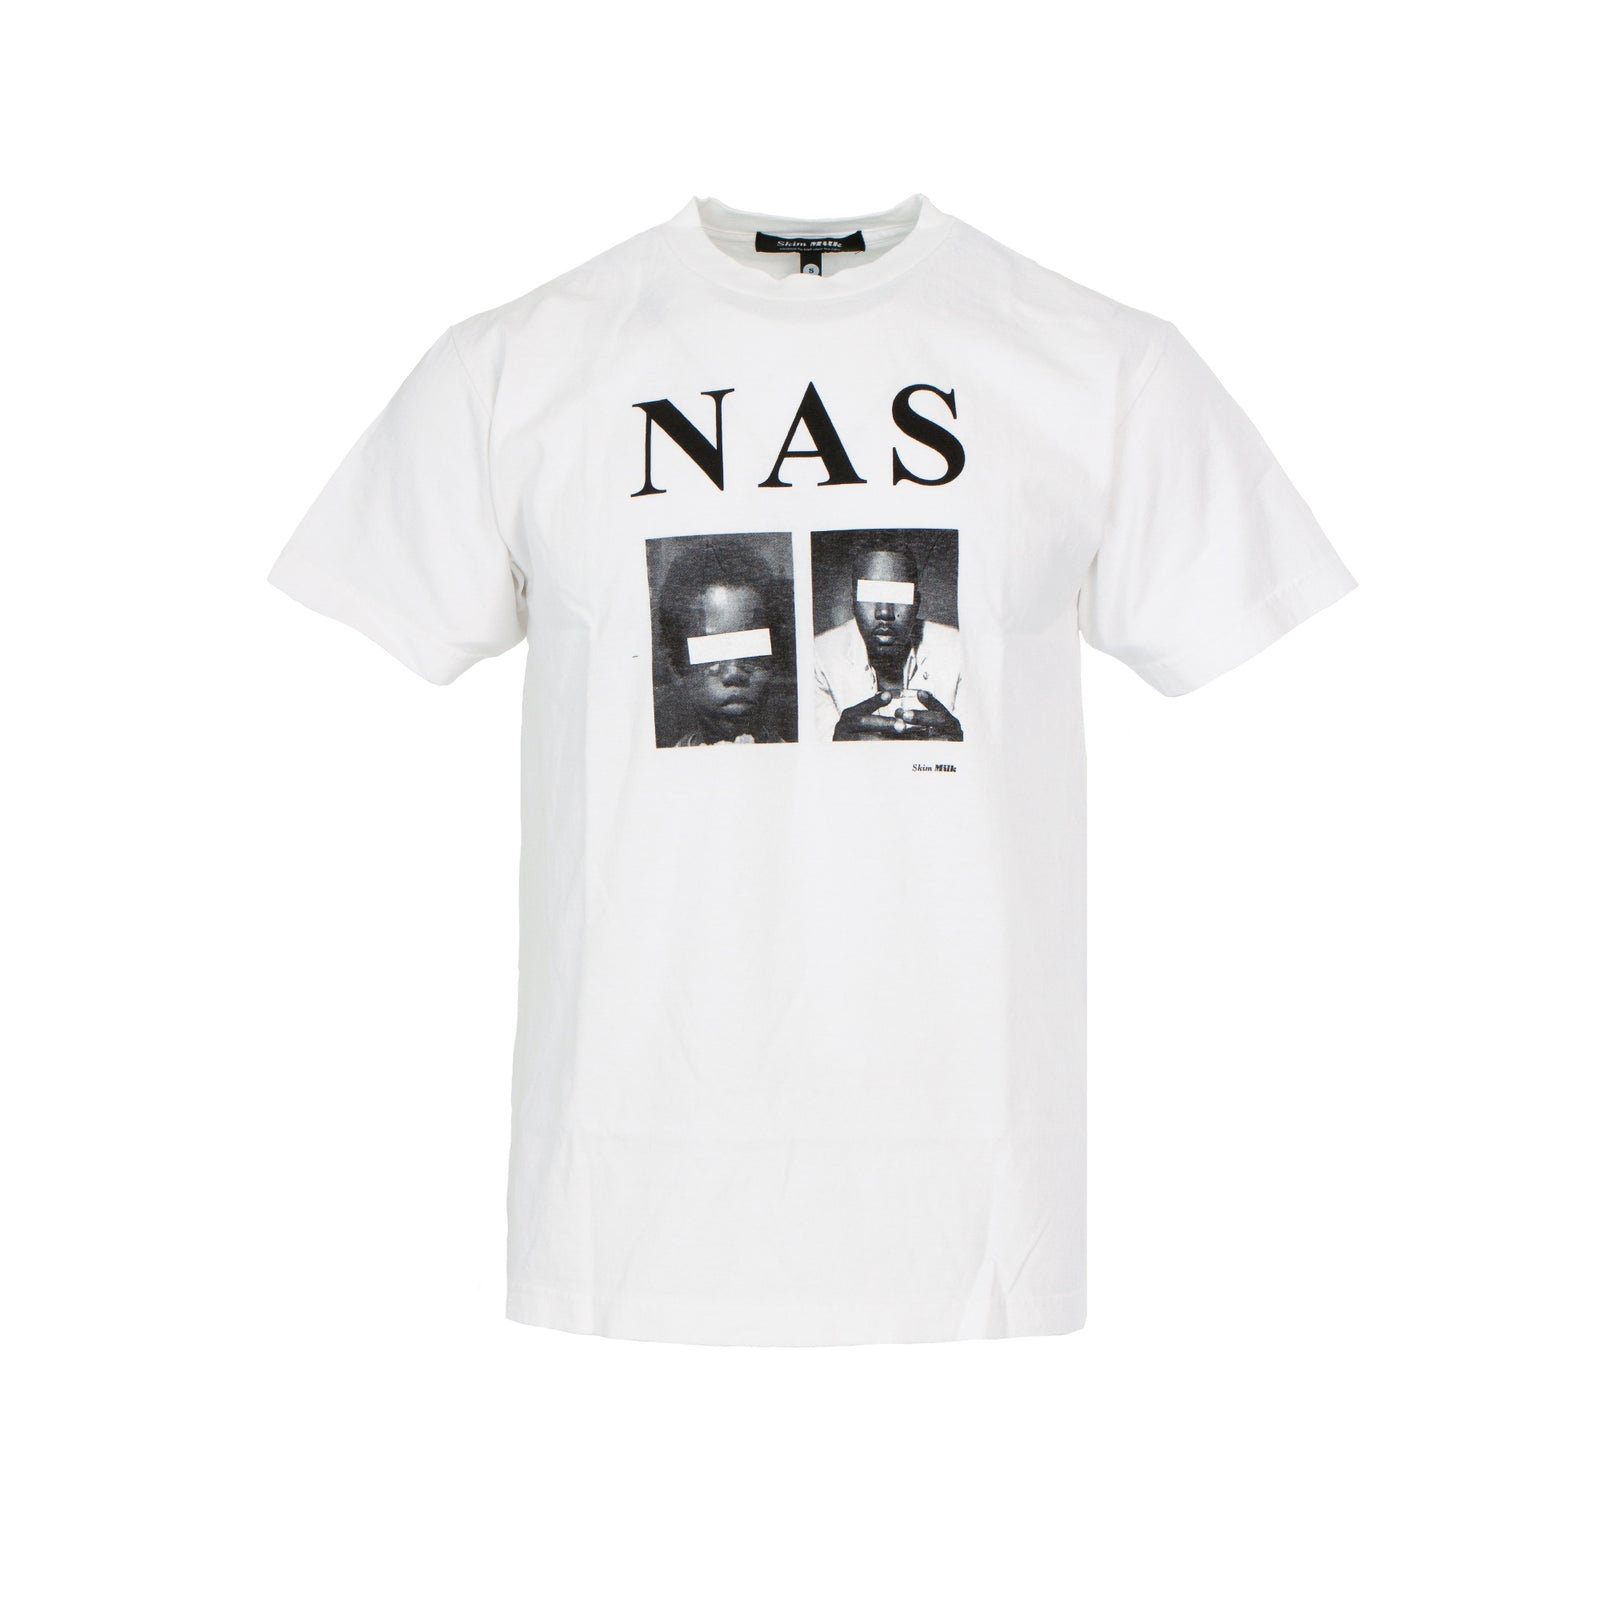 Skim Milk NAS DNA Men's Crewneck Graphic Tee